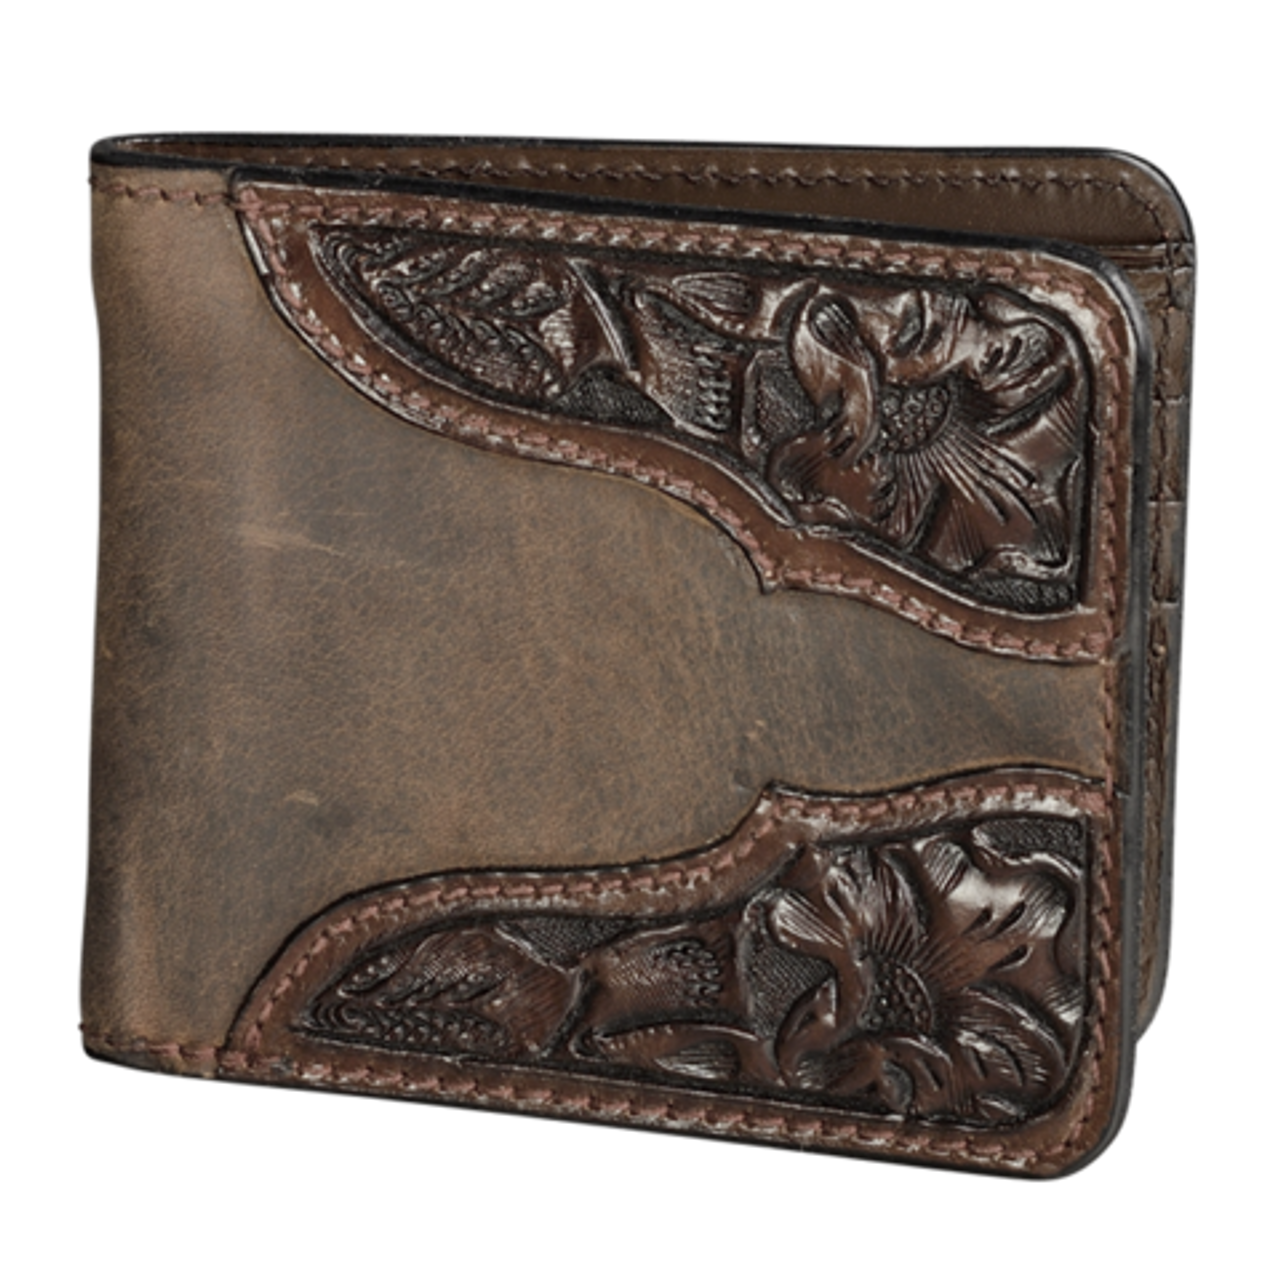 Hand Tooled Men's Leather Wallet